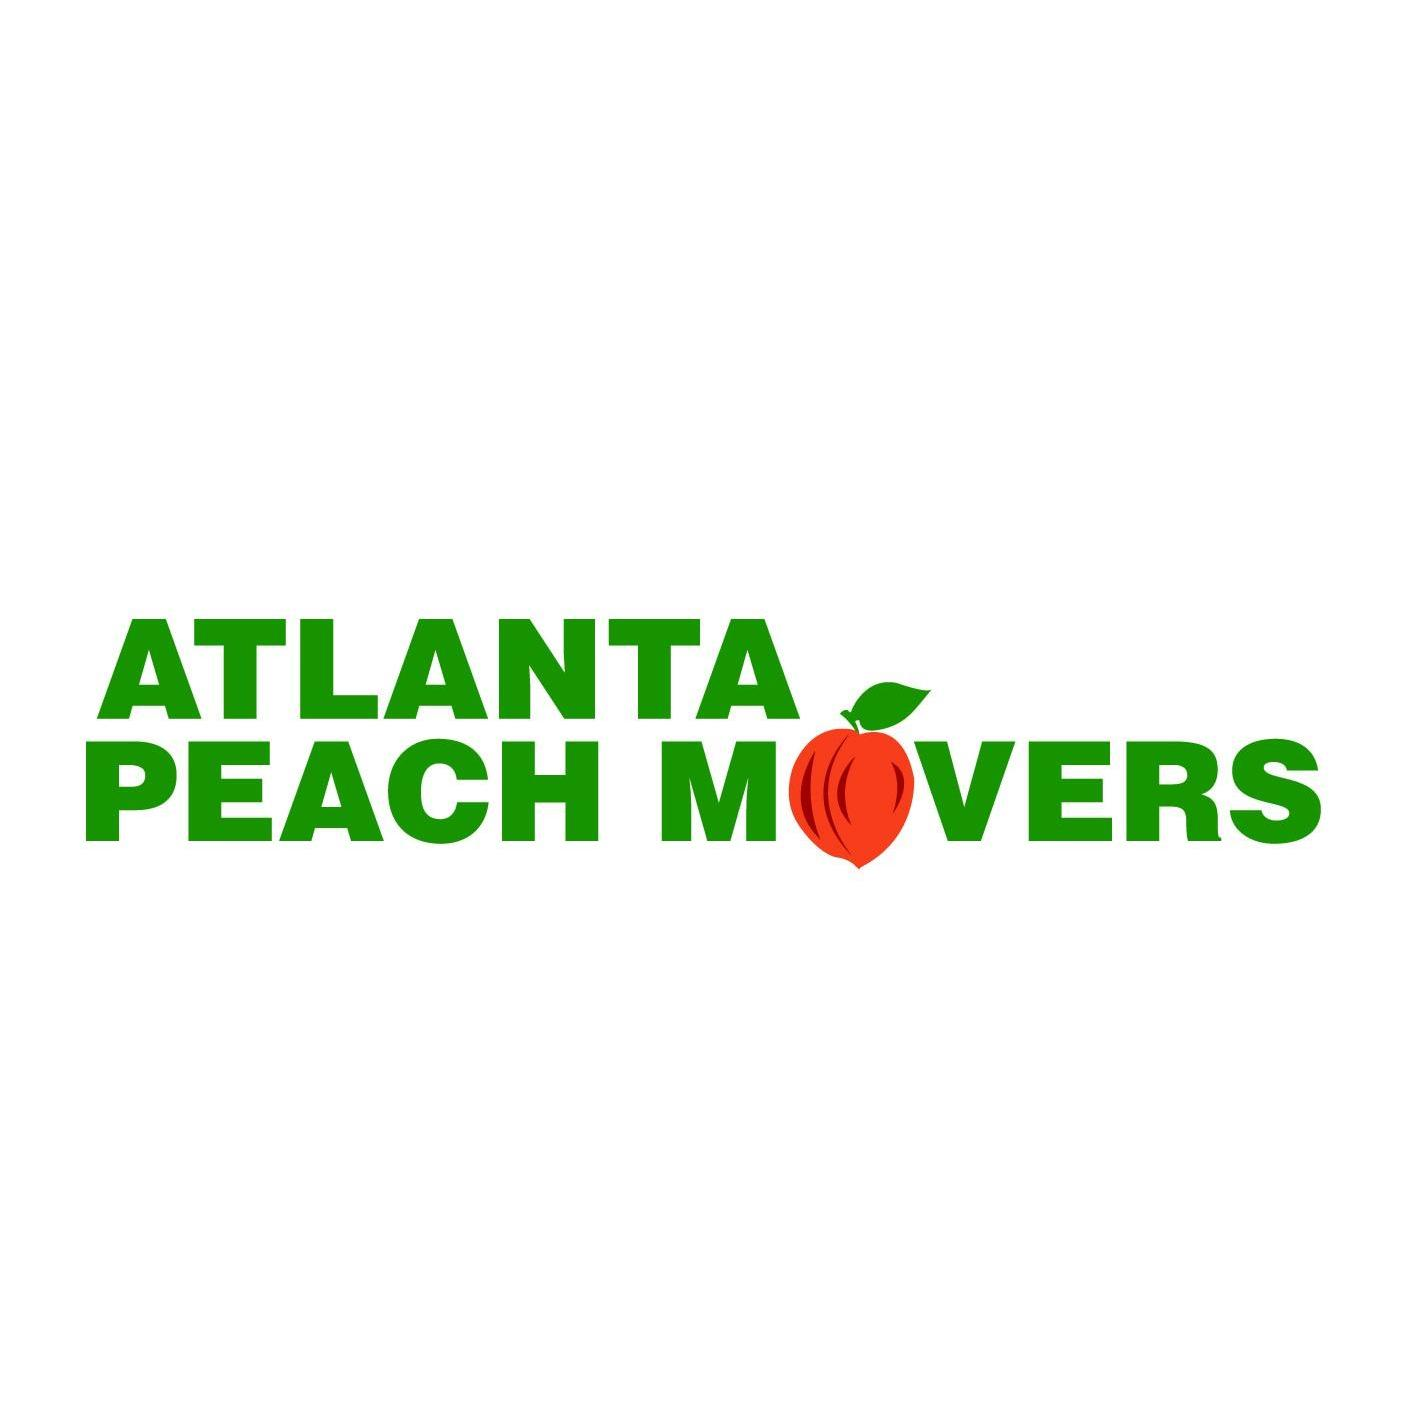 Atlanta Peach Movers - Doraville, GA - Movers